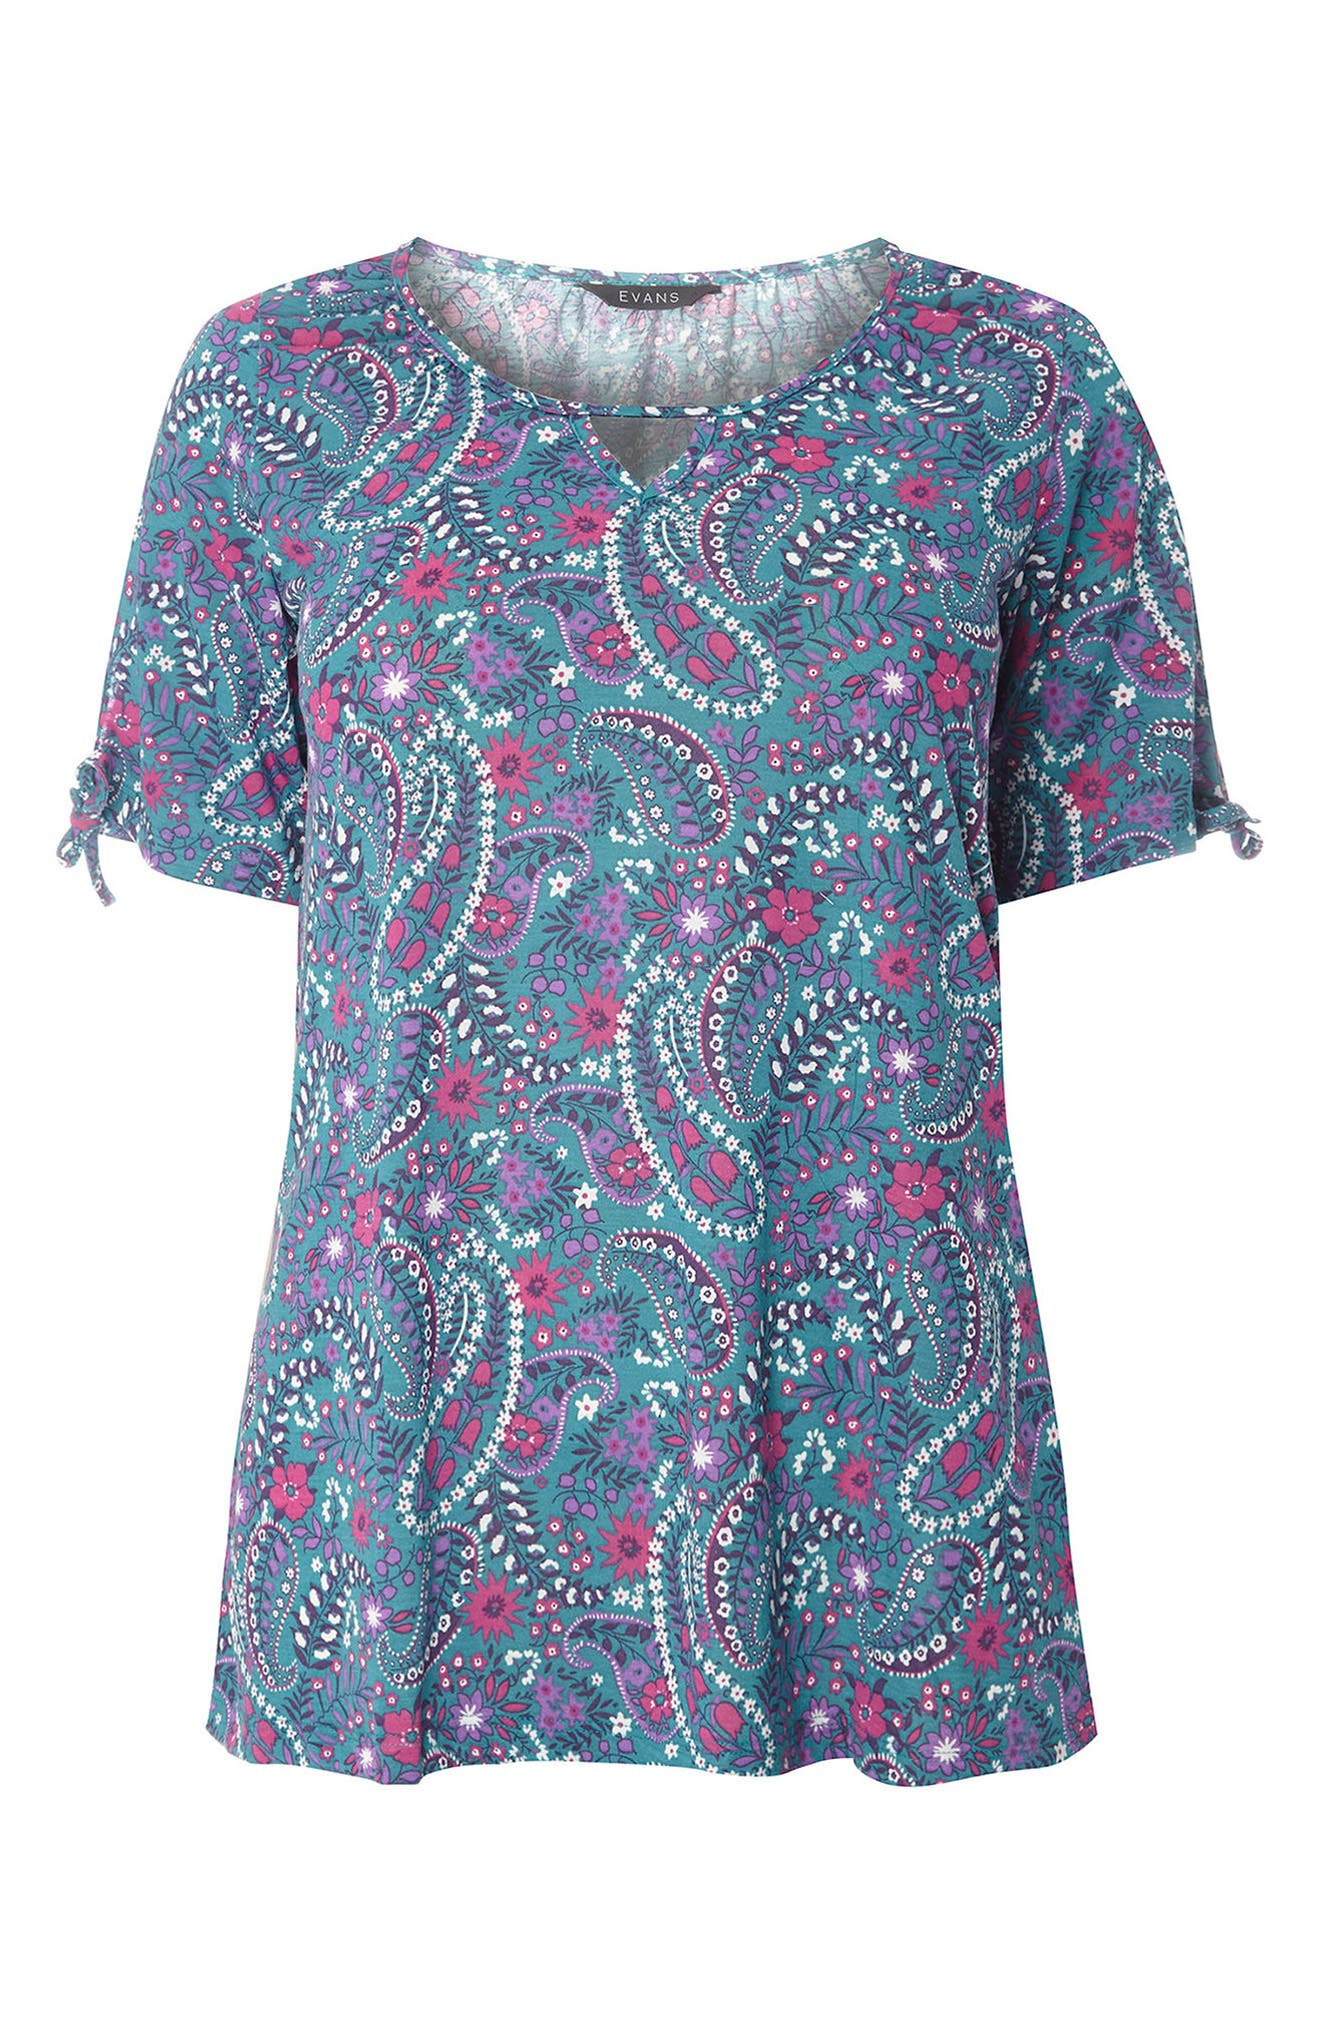 Paisley Floral Top,                             Alternate thumbnail 4, color,                             Teal